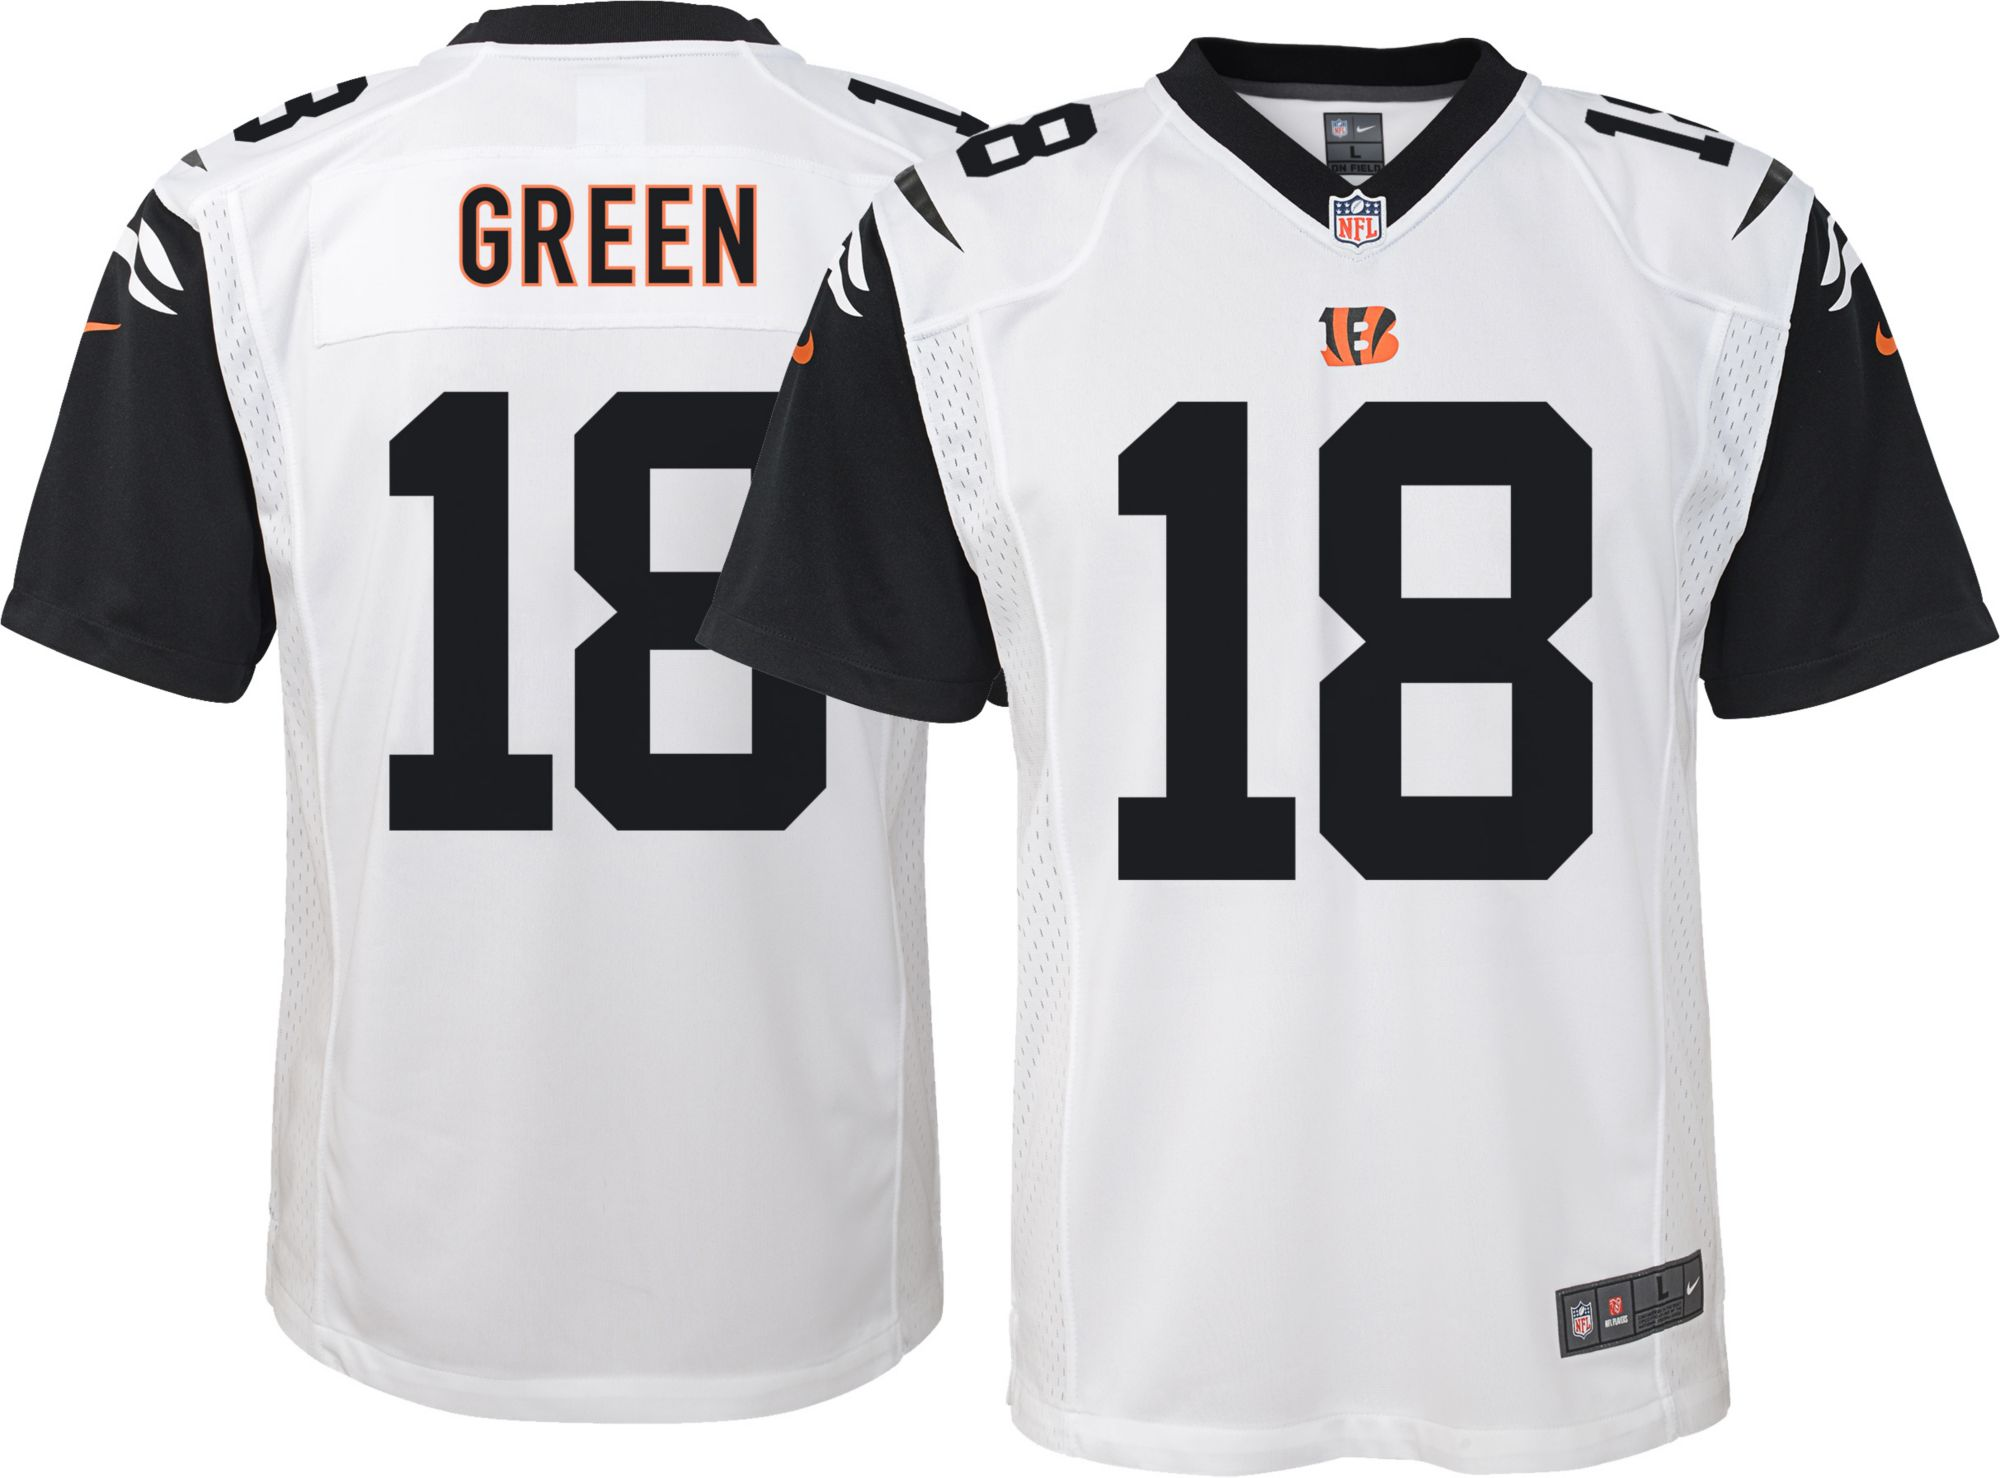 bengals color rush jersey